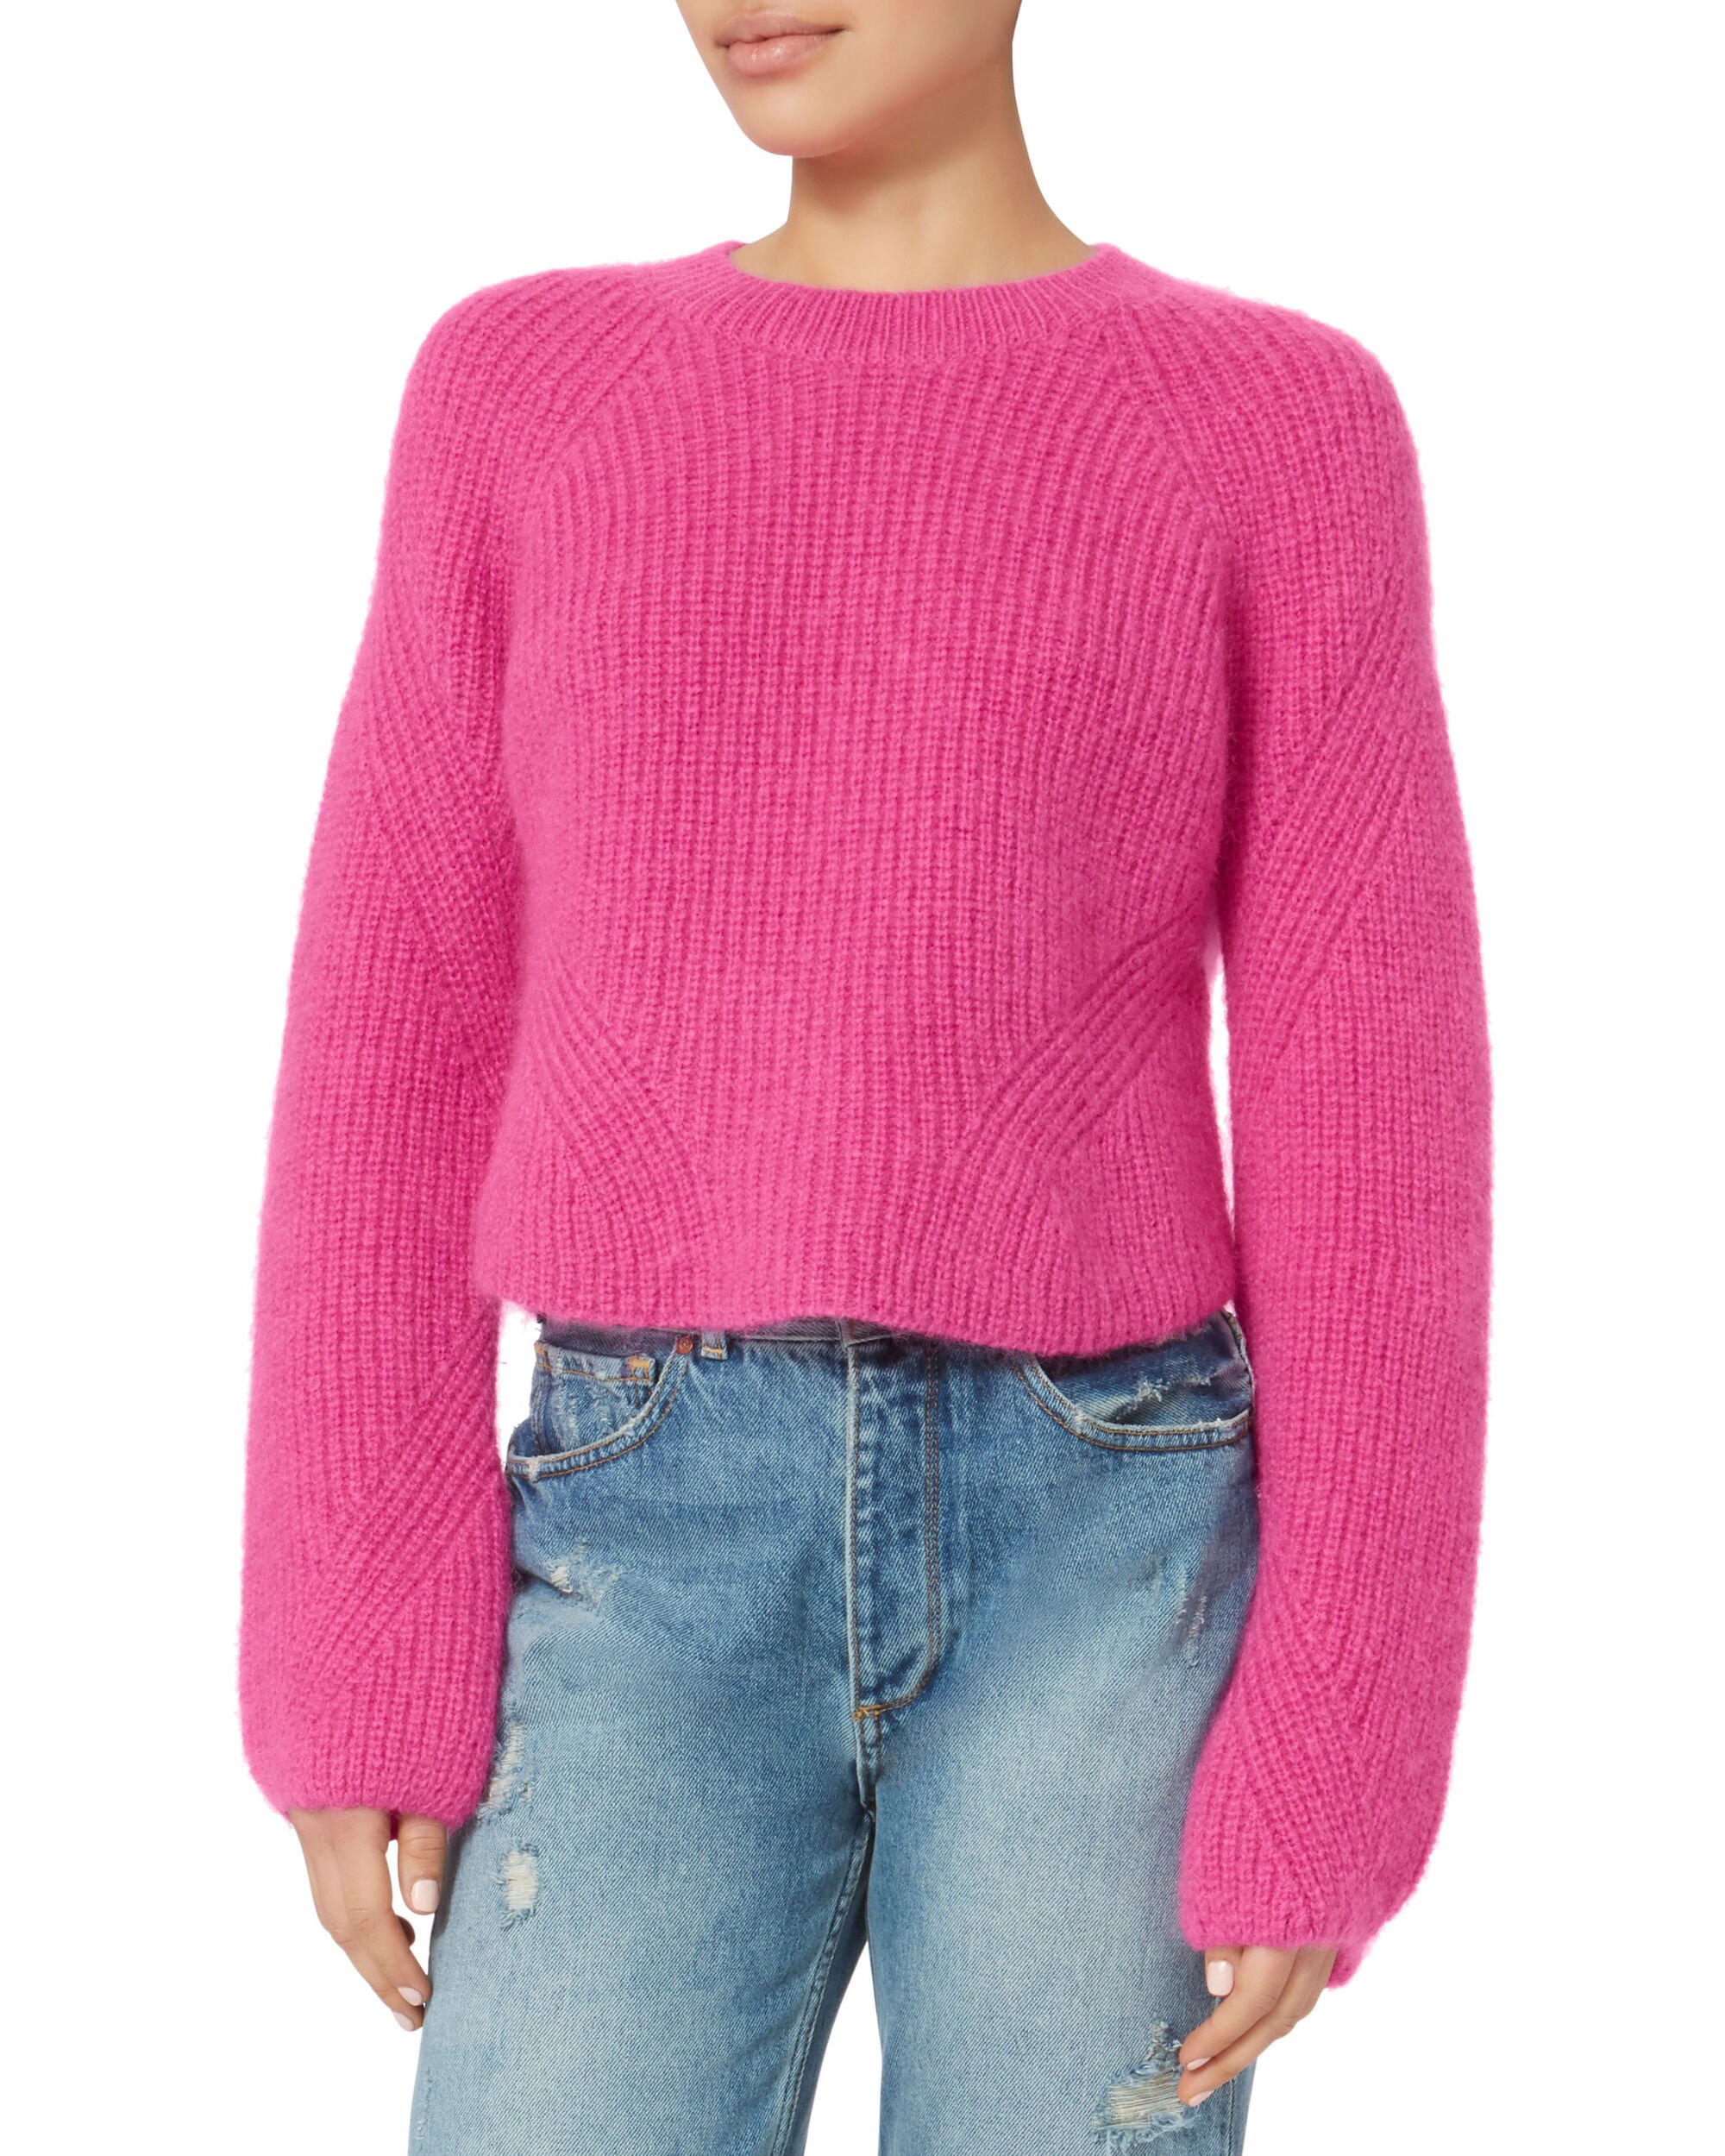 Luella Cropped Pink Pullover Sweater, PINK-MED 3, hi-res